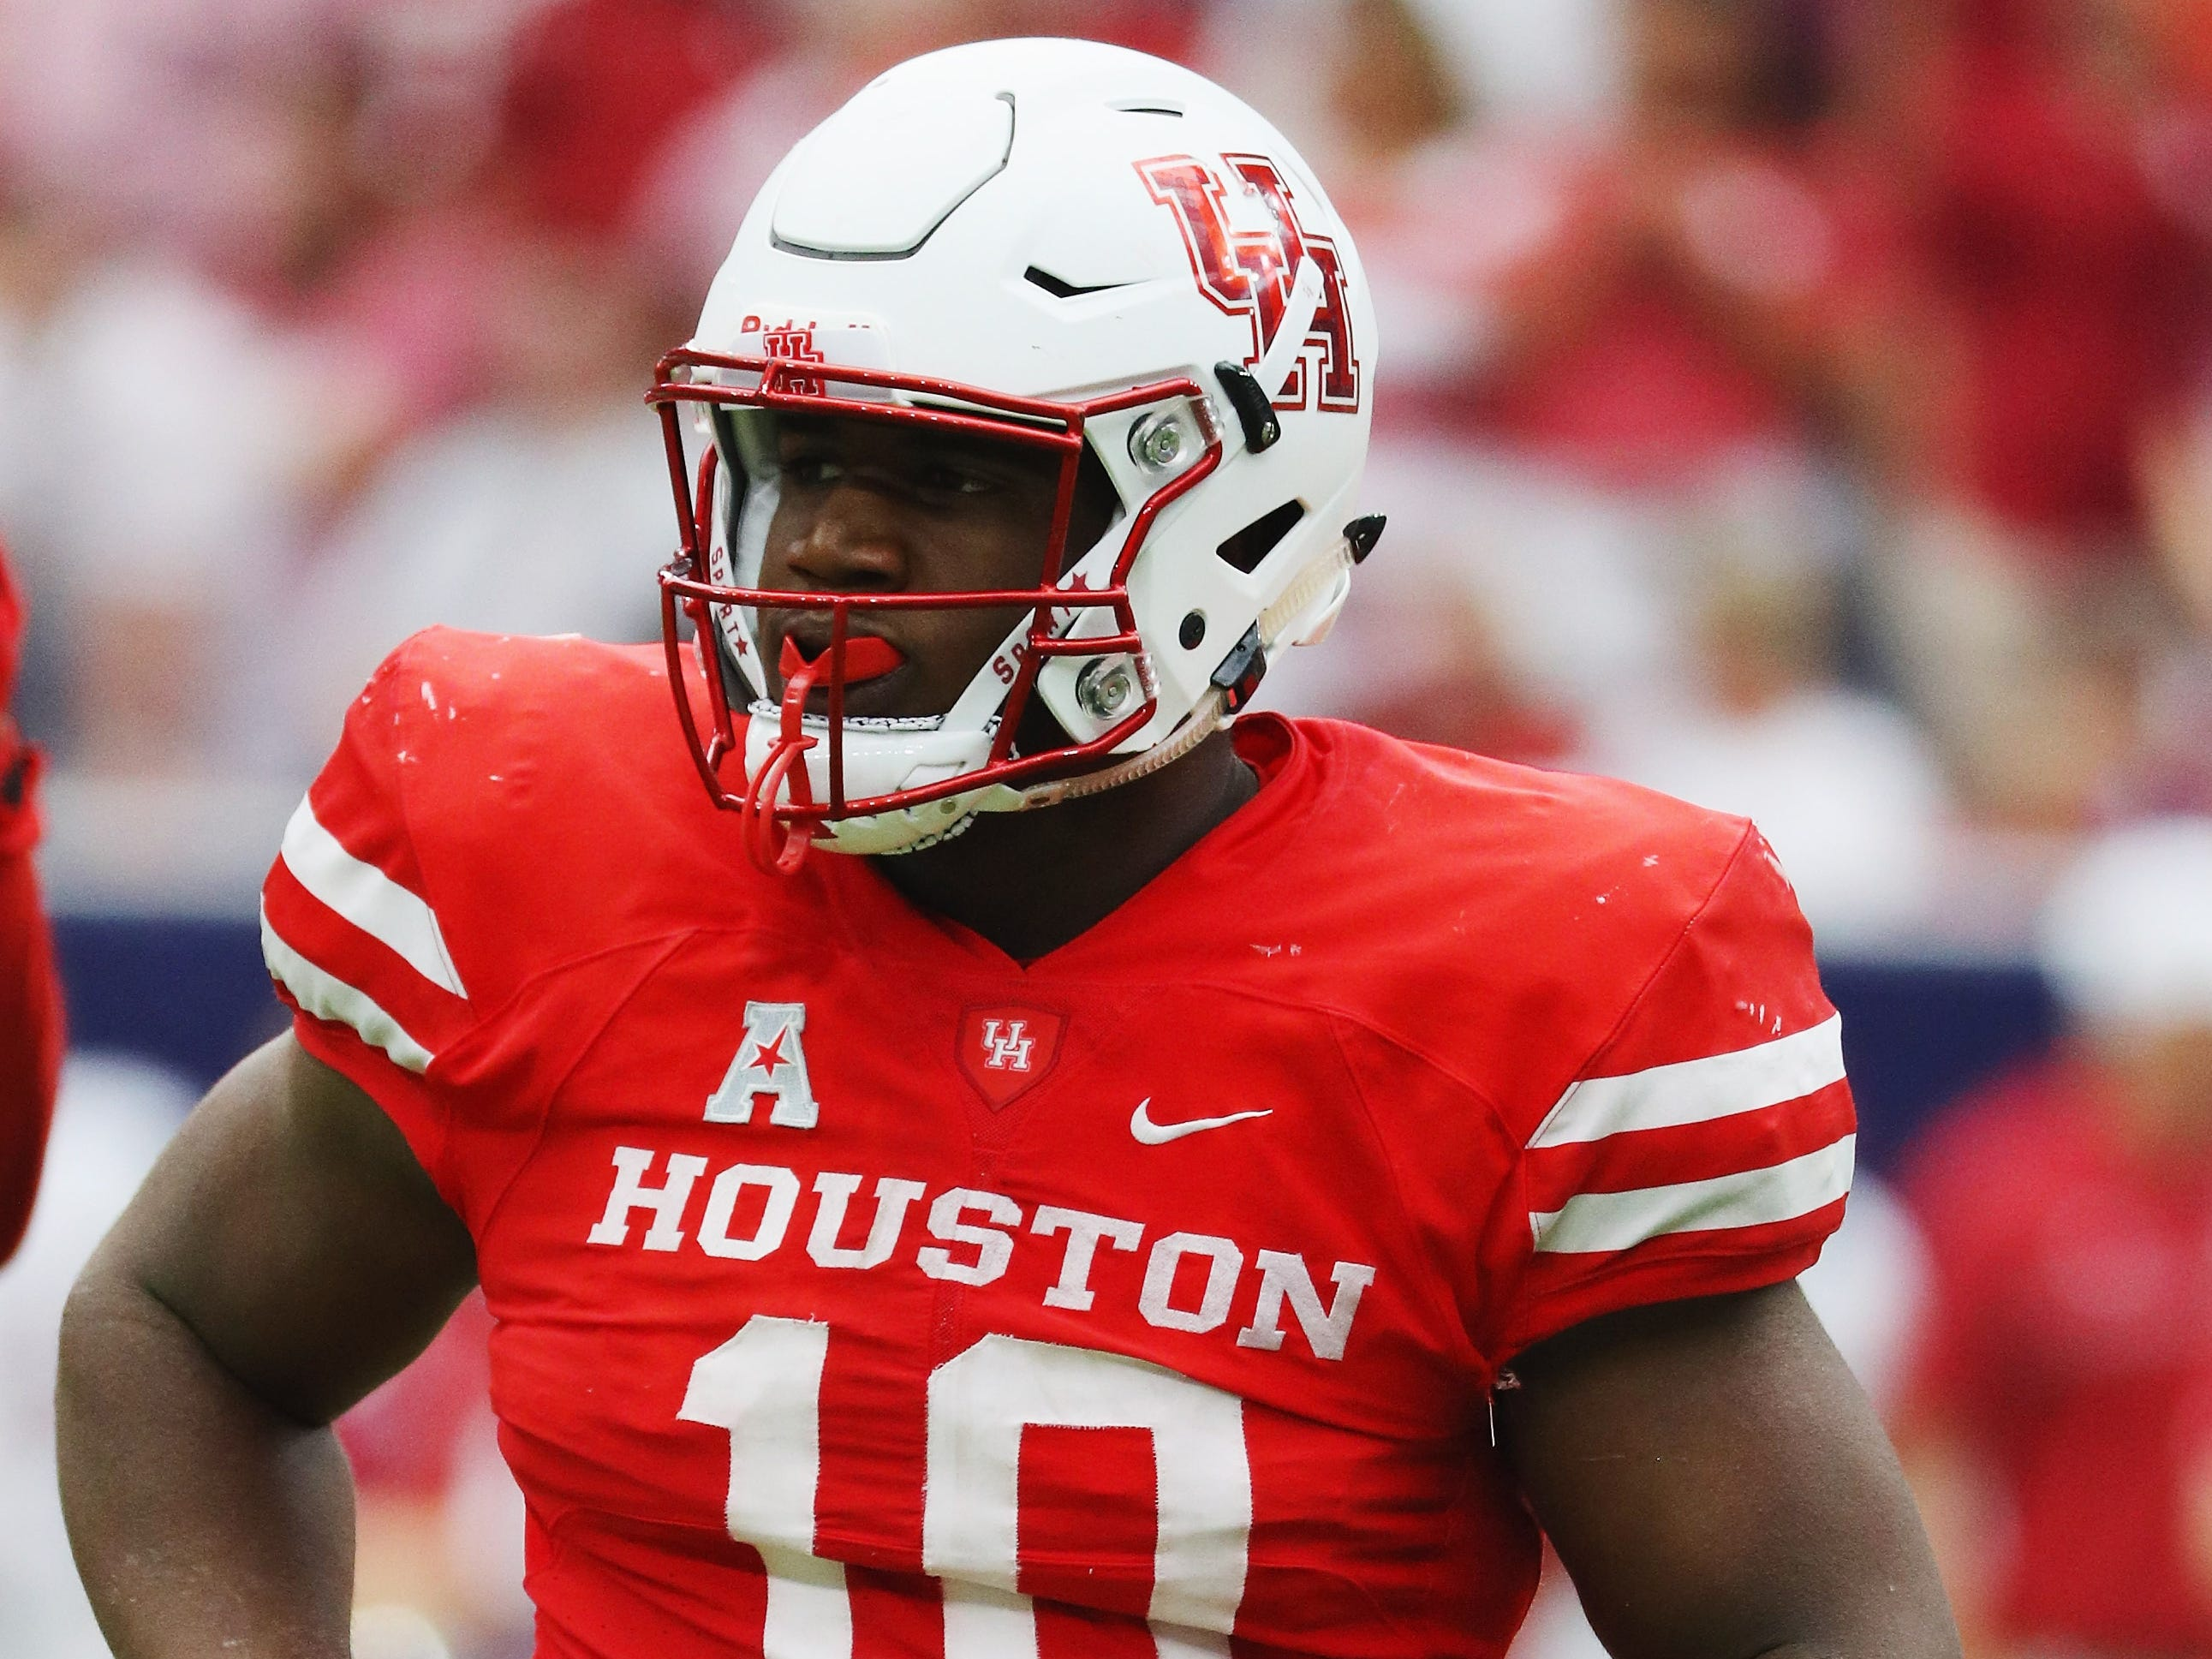 4. Ed Oliver, DT, Houston: The comparisons to Aaron Donald are unrealistic, but Oliver has the potential to be a highly disruptive interior lineman, despite being 20-30 pounds smaller than prototypical build at the position.